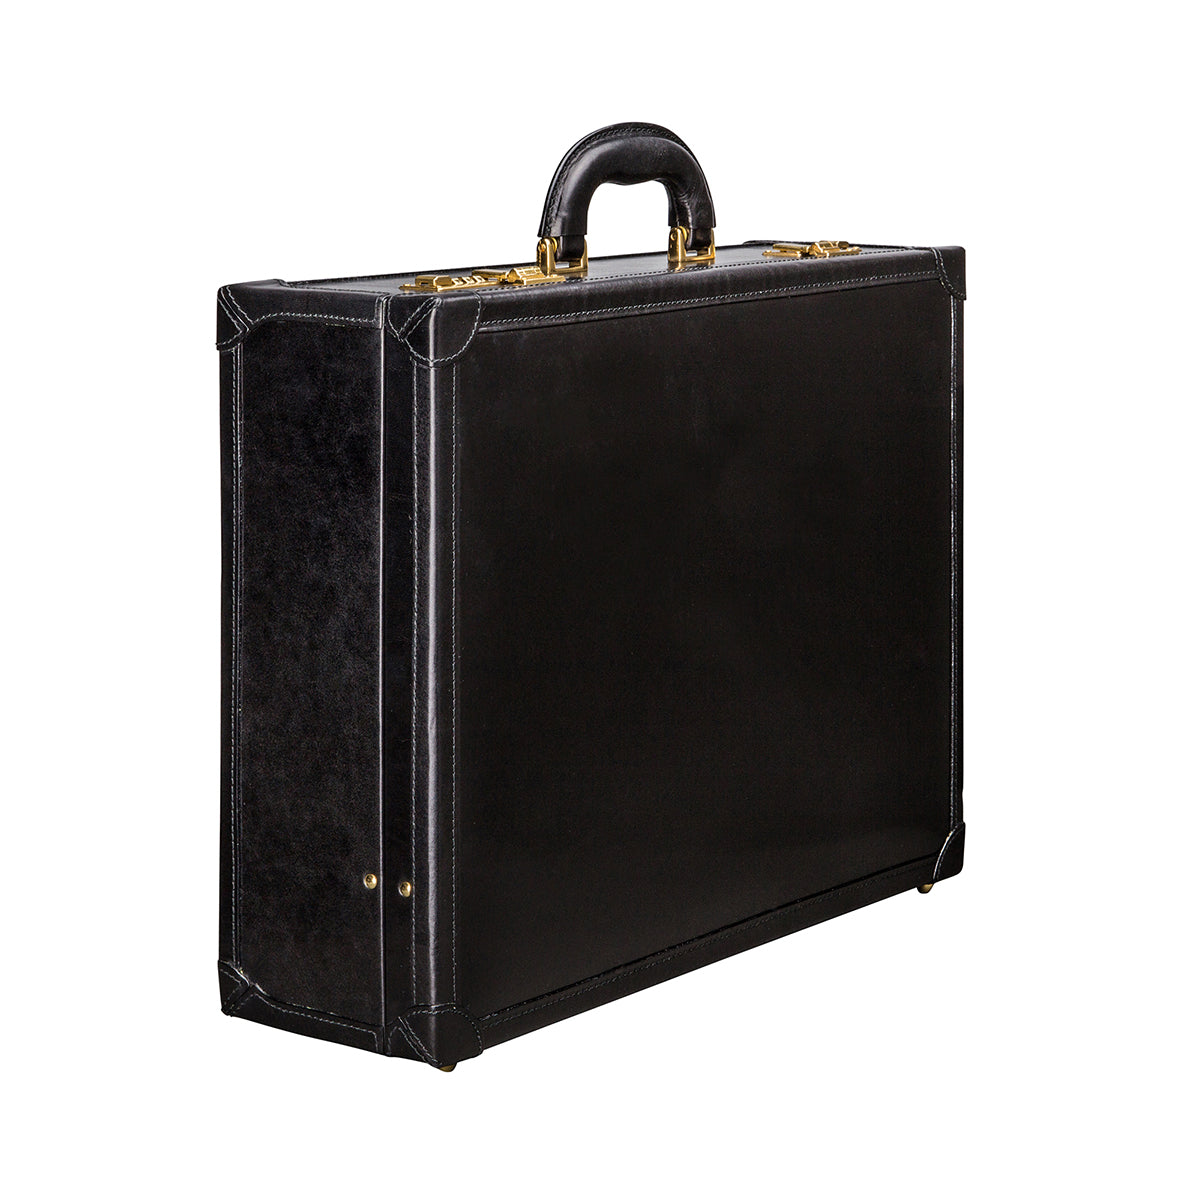 Image 2 of the 'Buroni' Black Veg-Tanned Leather Business Attaché  Case